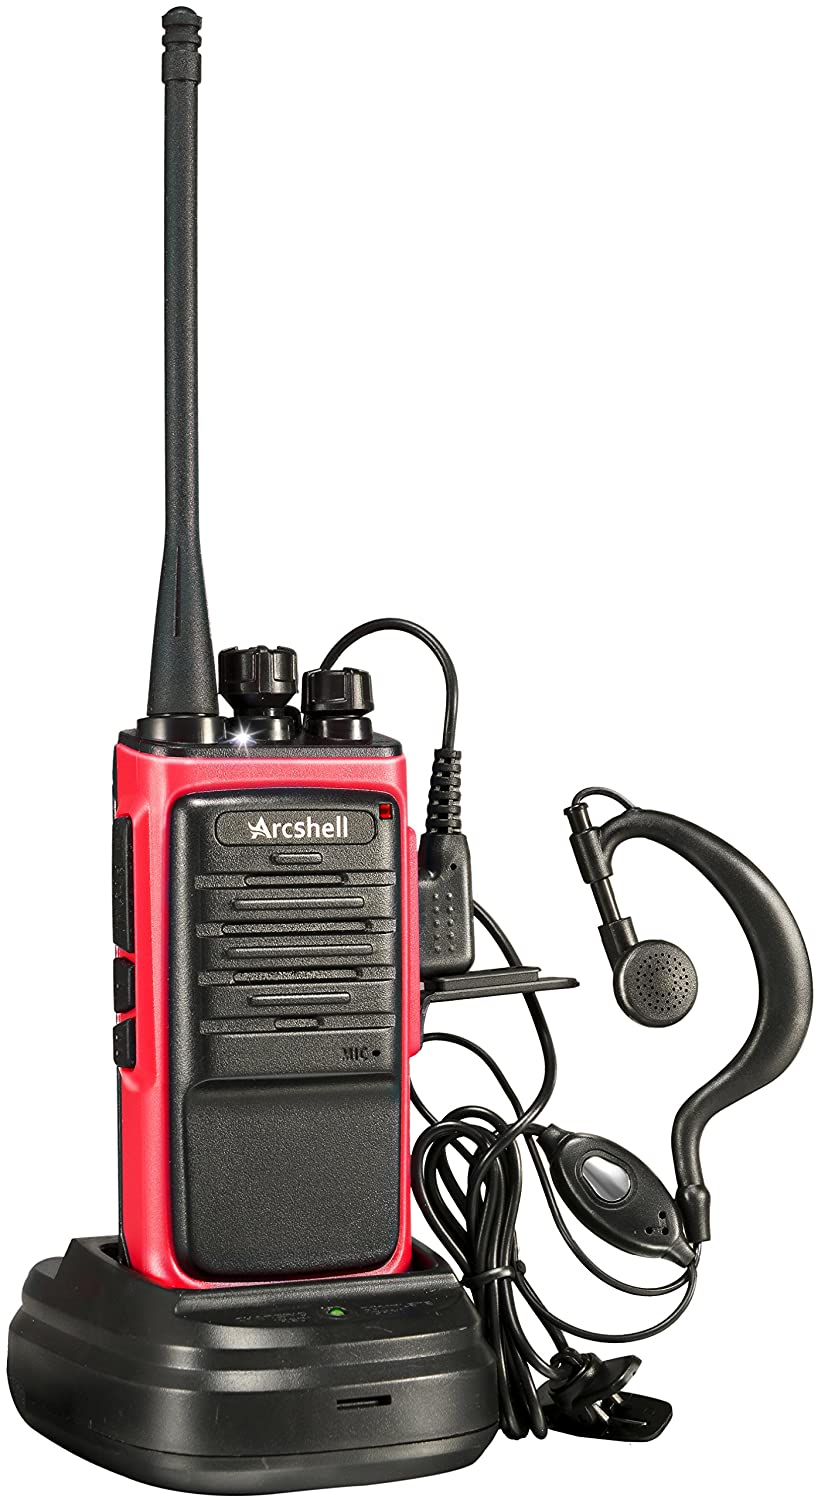 Arcshell Rechargeable Long Range Two-Way Radios with Earpiece 2 Pack Walkie Talkies UHF 400-470Mhz Li-ion Battery and Charger Included 4350440431